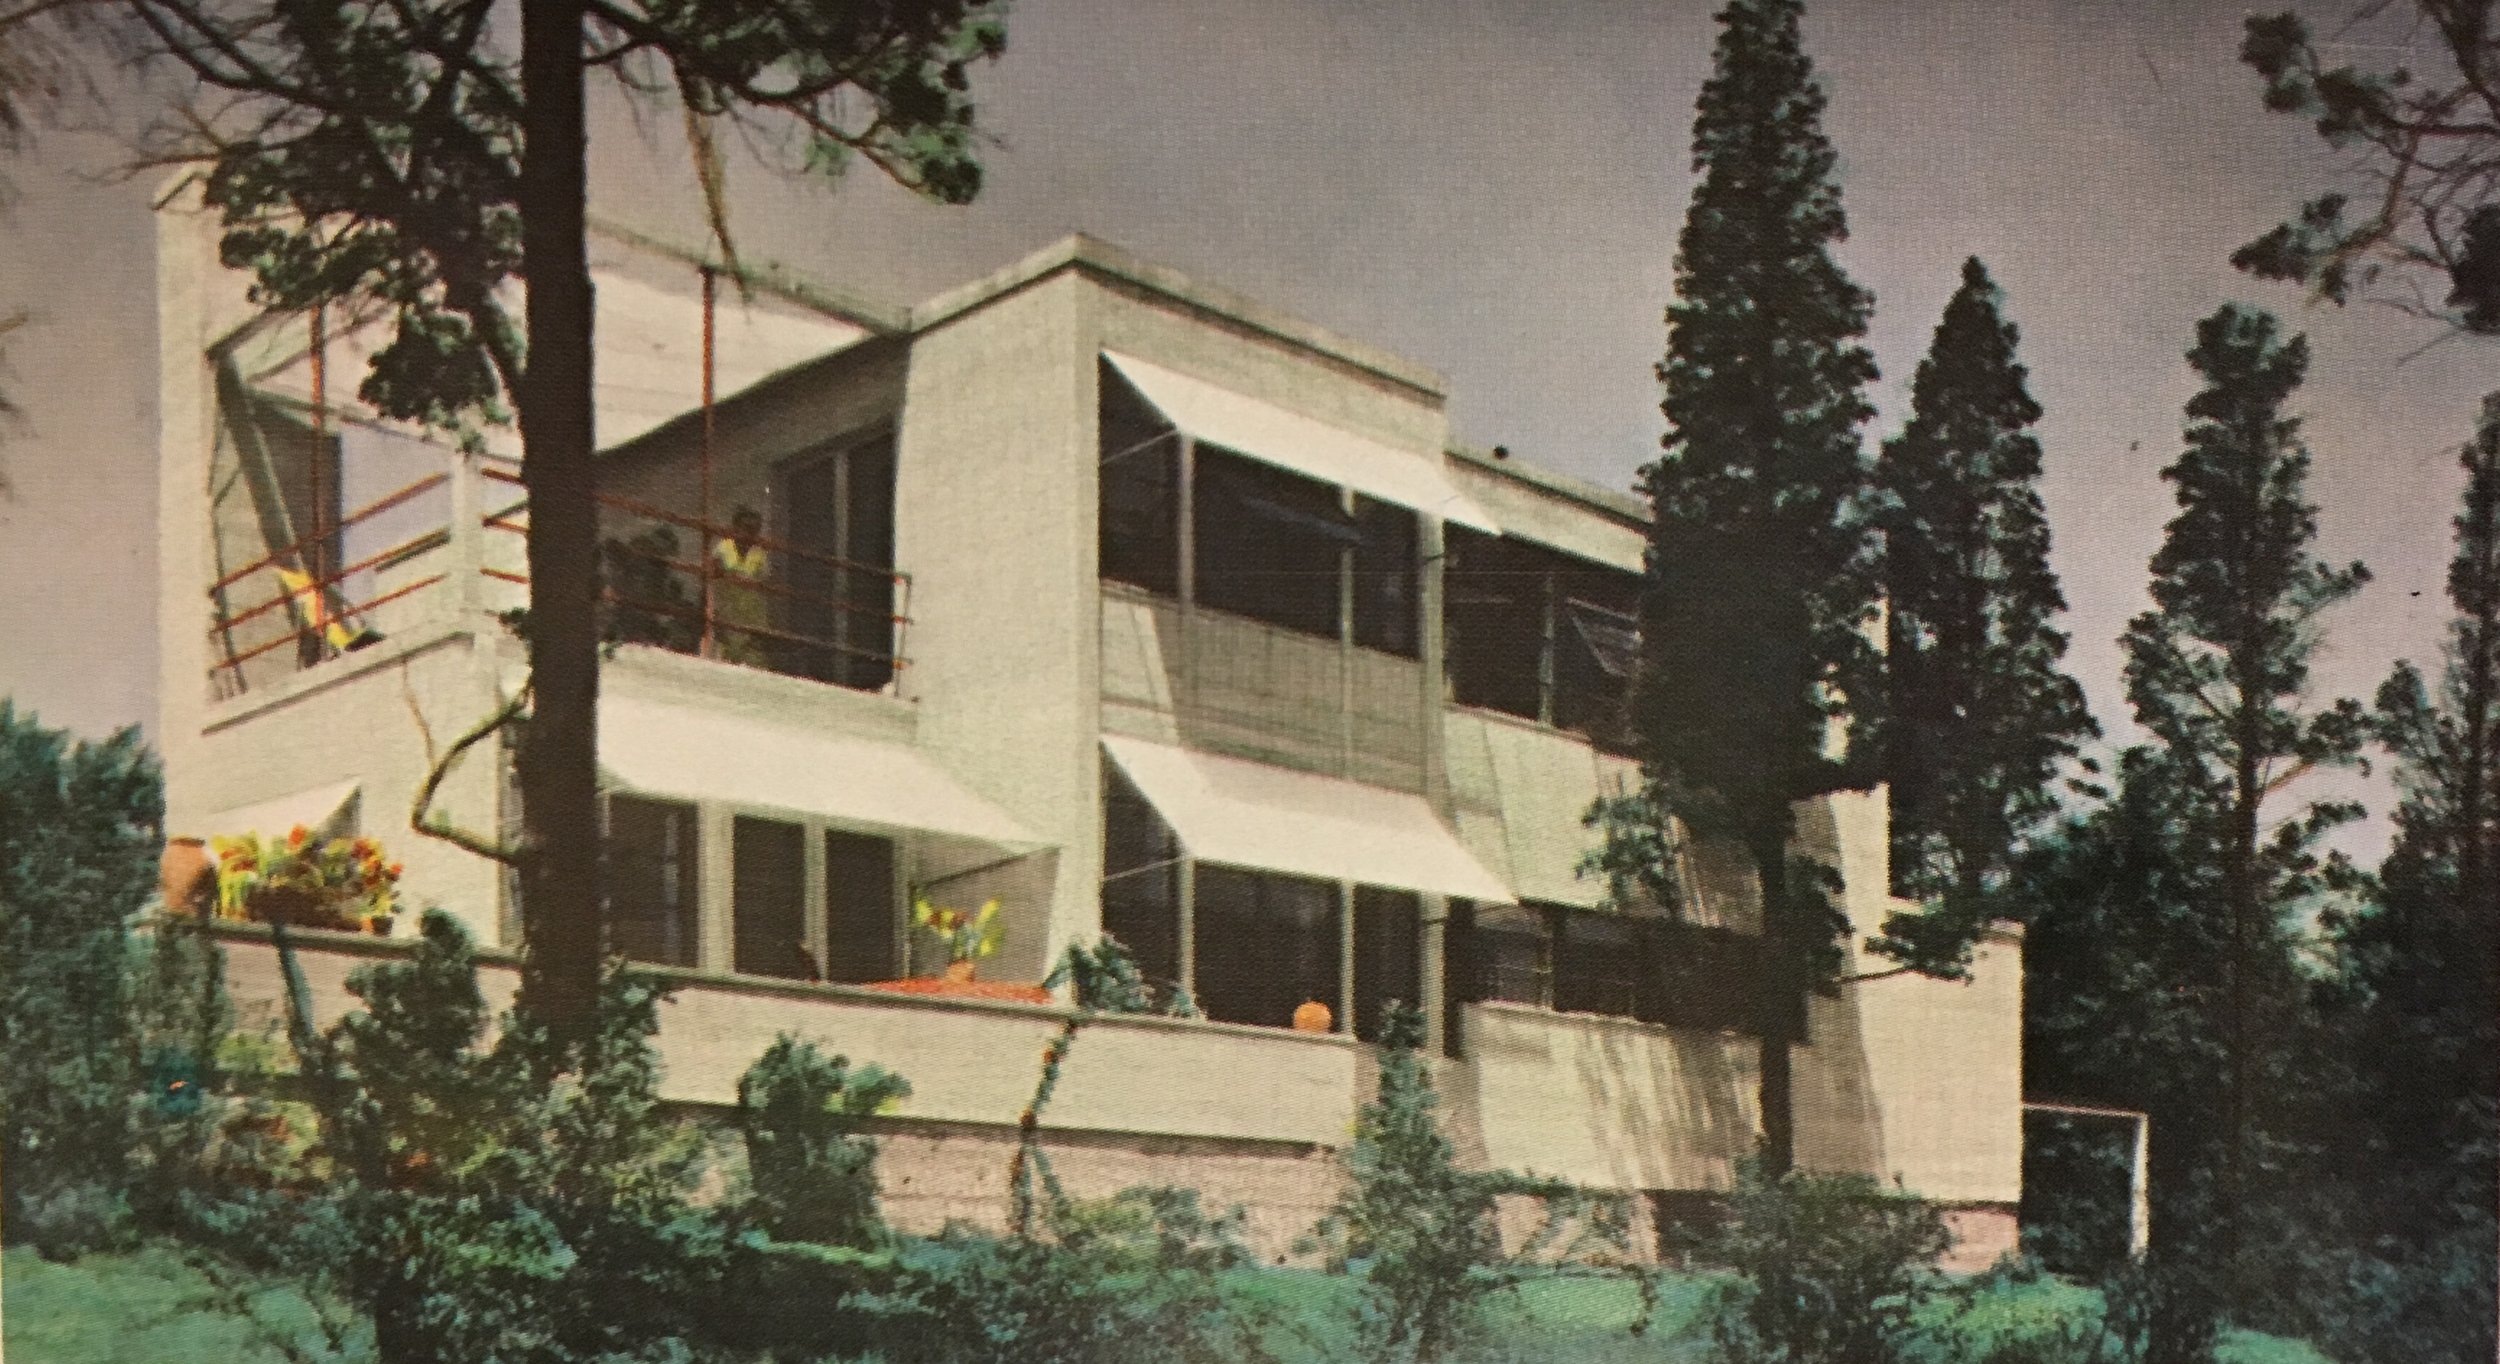 """""""…THE BEST SHE EVER DID"""" - eleanor raymond and the role of cultural bias in the loss of modern american residential architecture"""